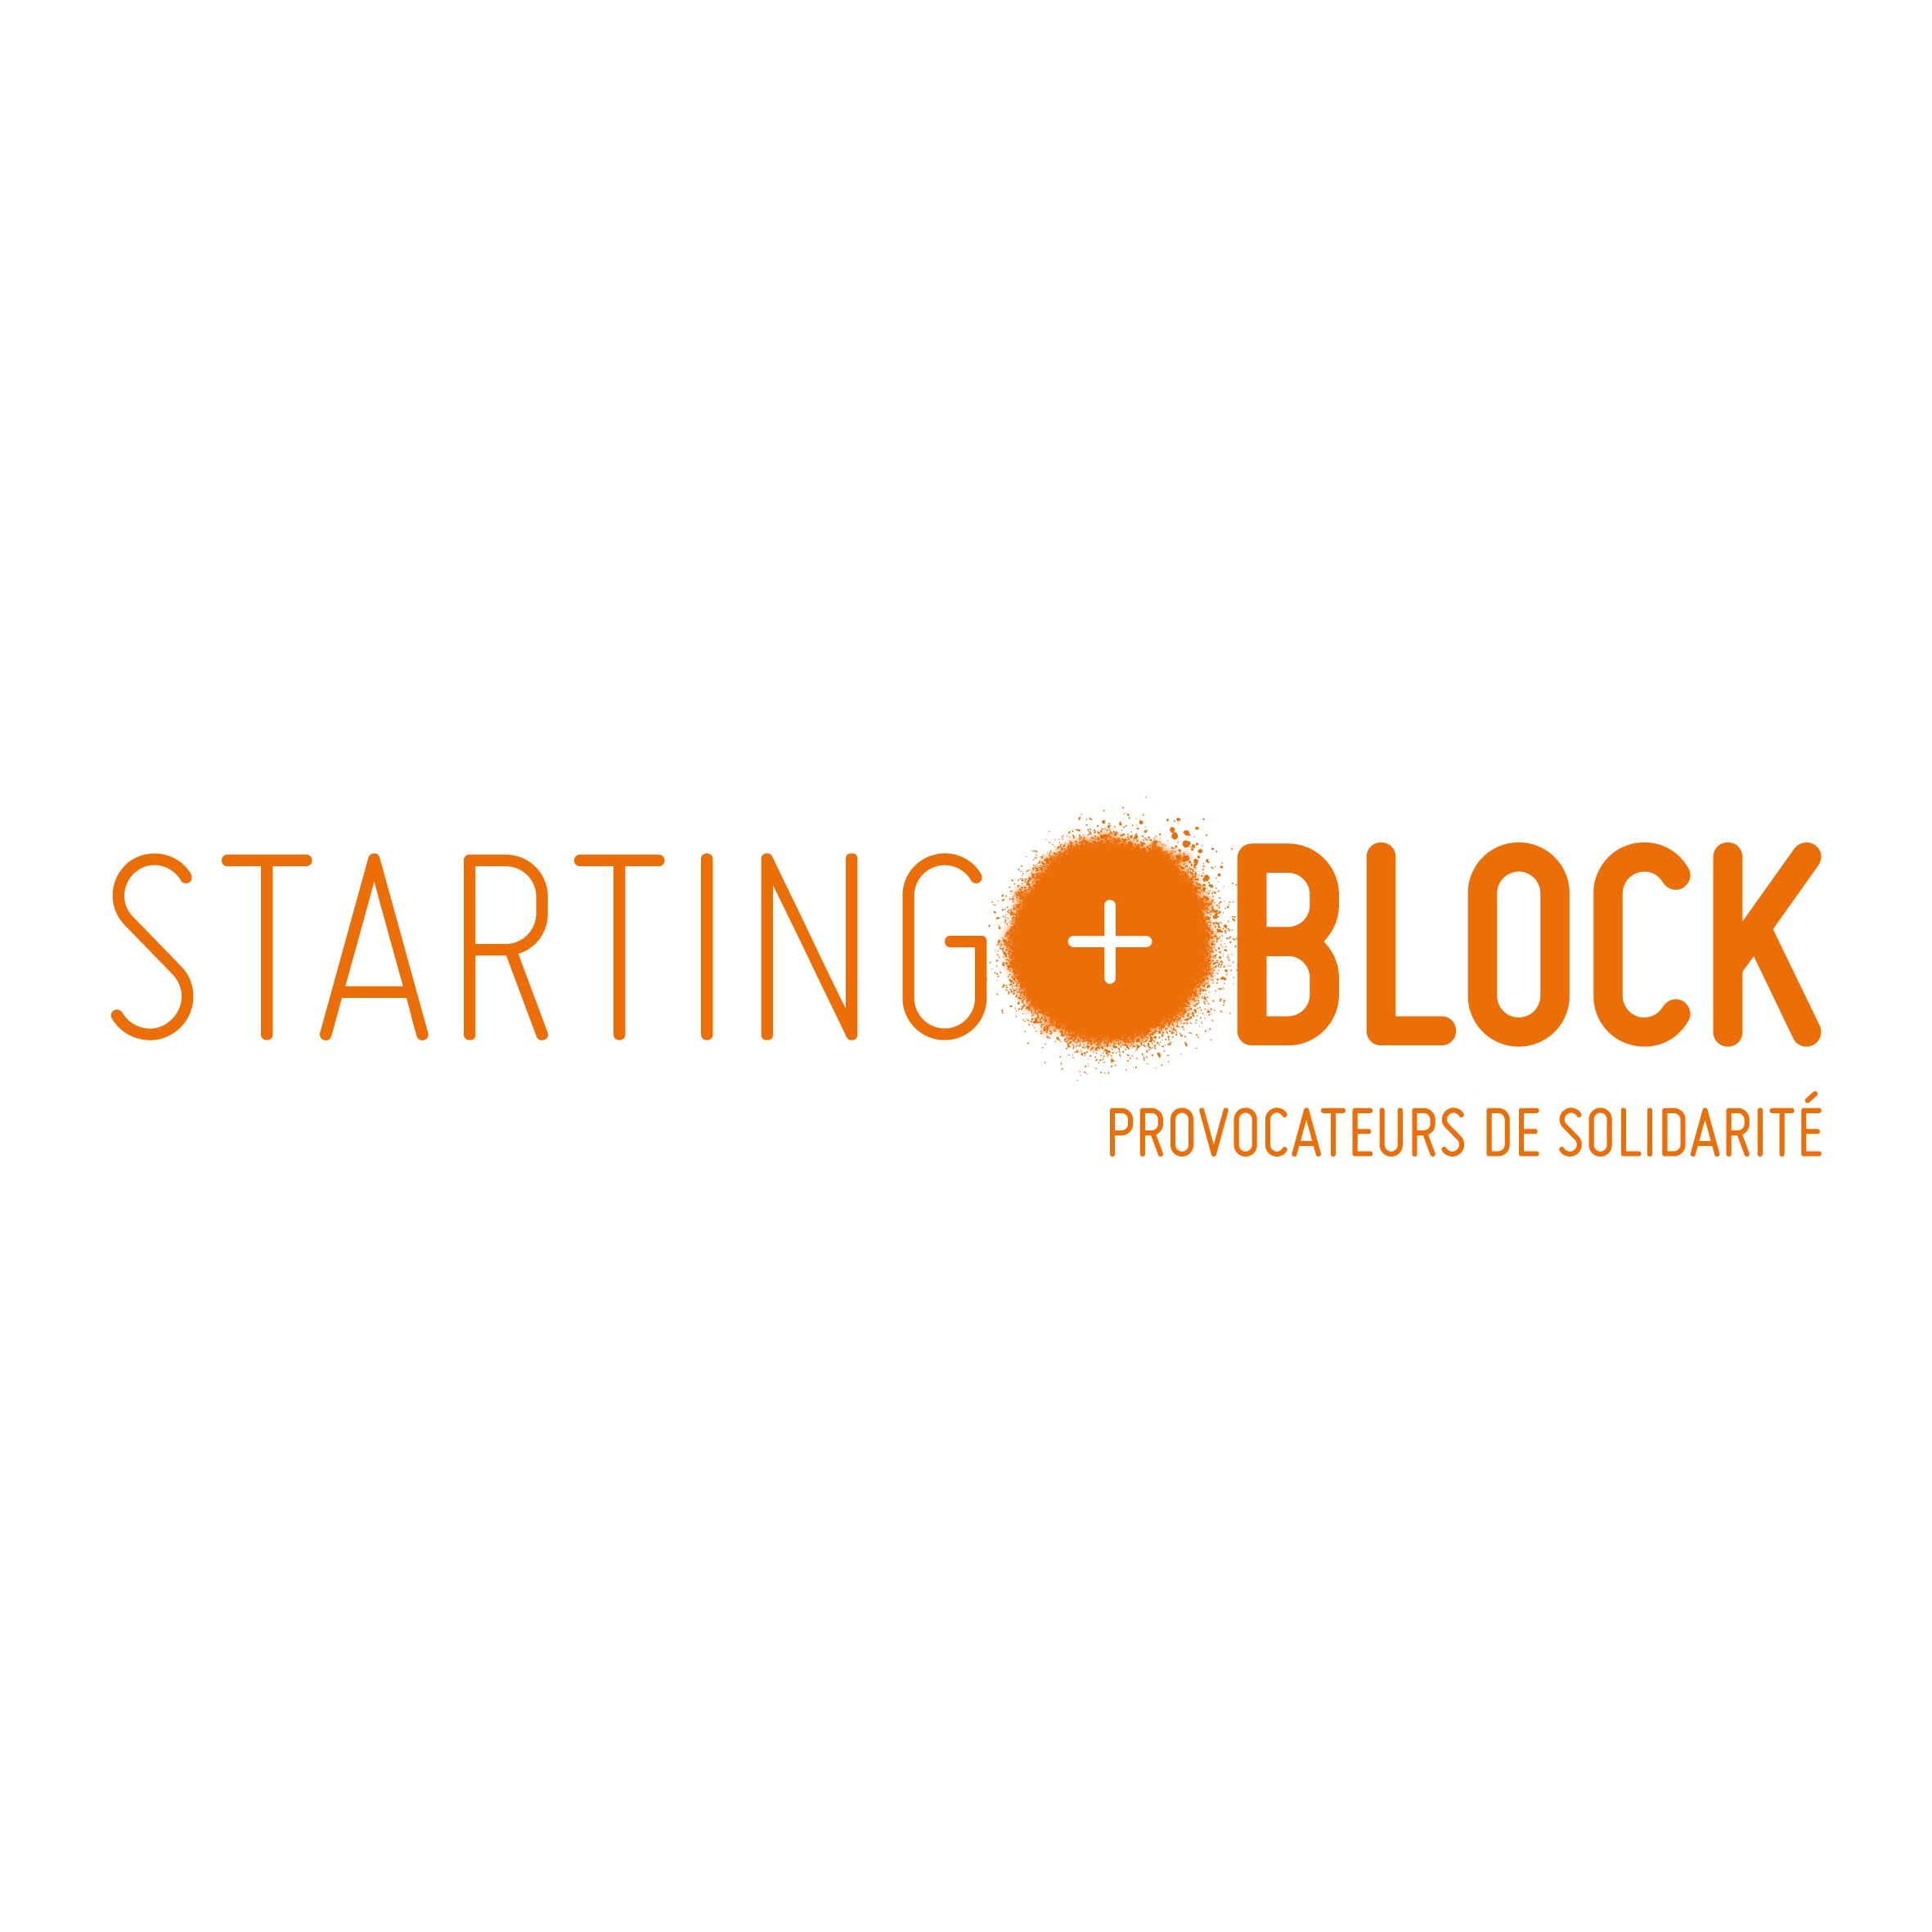 Starting-Block_logo